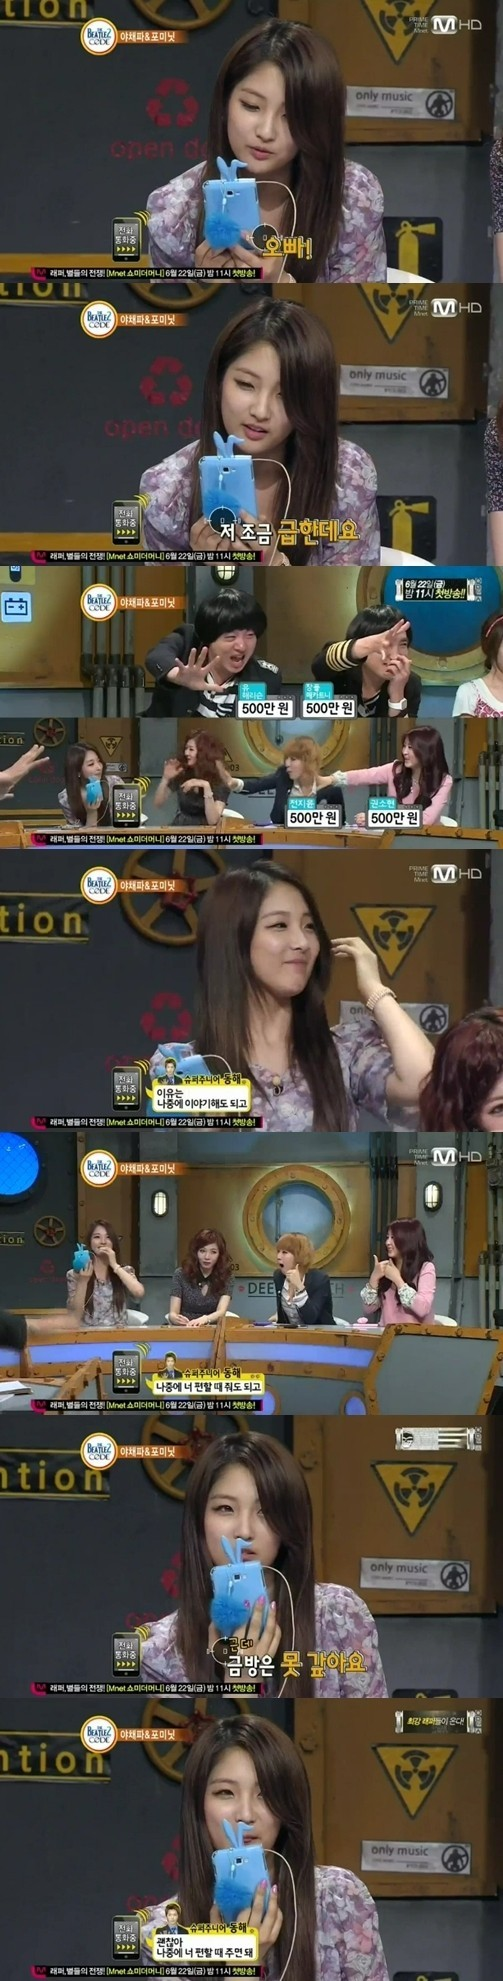 4 Minute's Nam Jihyun Asks Super Junior Donghae For Large Sum of Money on 'Beatles Code 2'